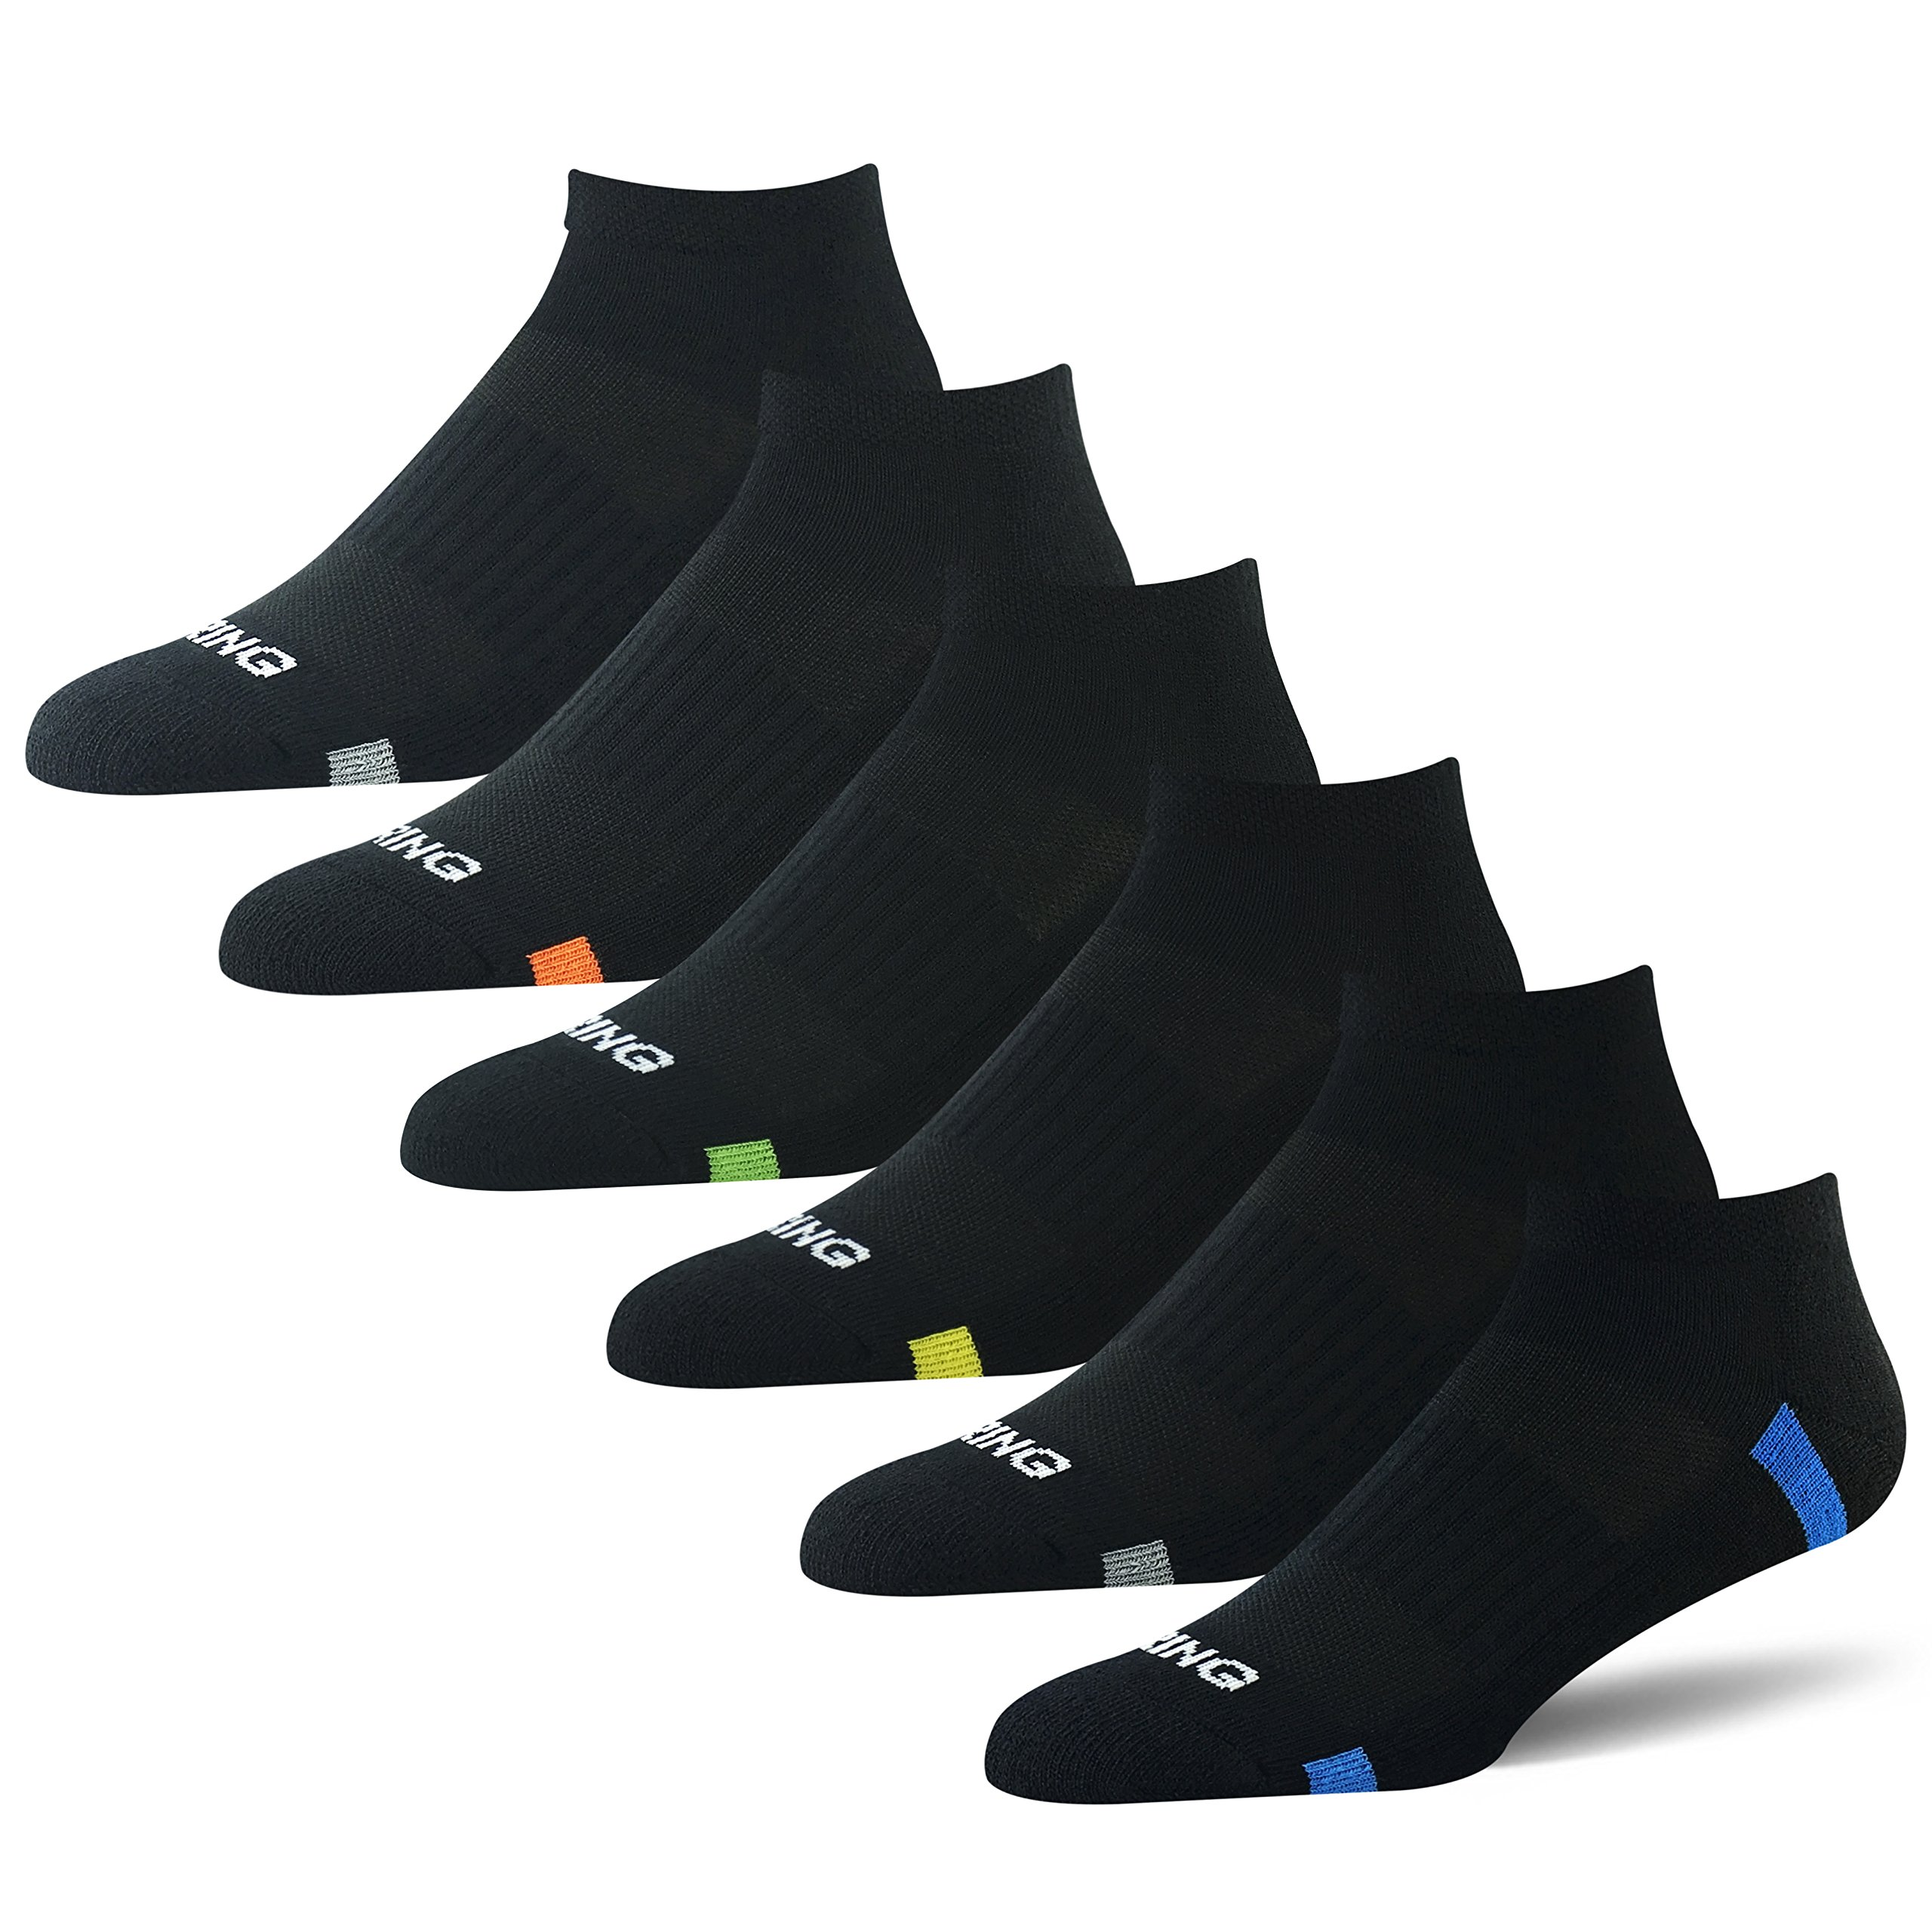 BERING Men's Ankle Athletic Socks for Running, Workout, and Casual (6 Pair Pack)